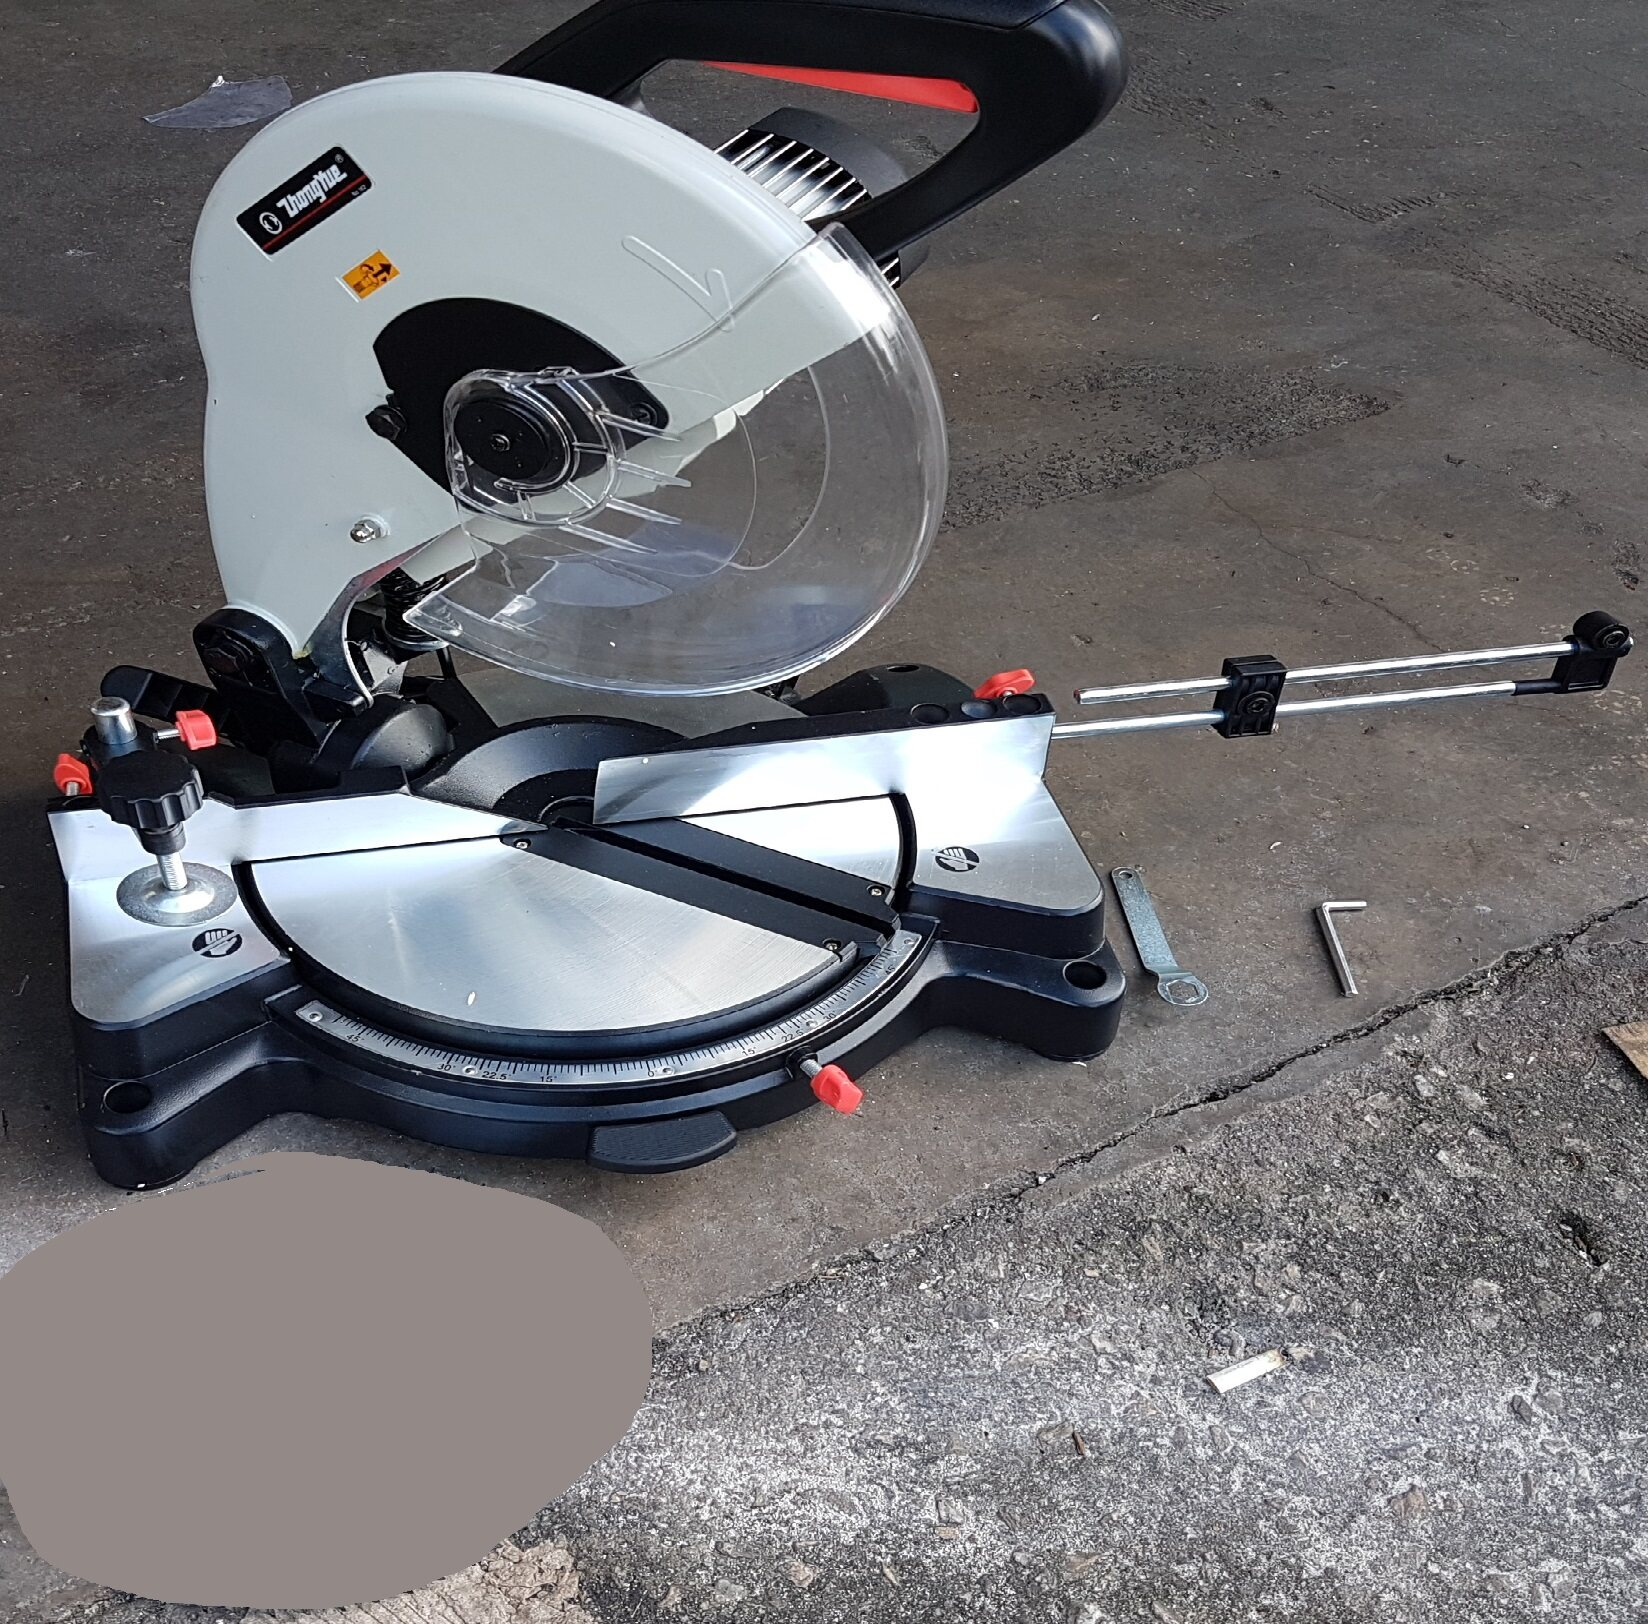 """12"""" inch cordless brushless induction motor miter saw wood aluminium power cut off slide side compound blade plate tool metal cutter control adjust keep move moving up down put slice slicer safety hand driver drive gear vise auto angle grinder drill disc"""